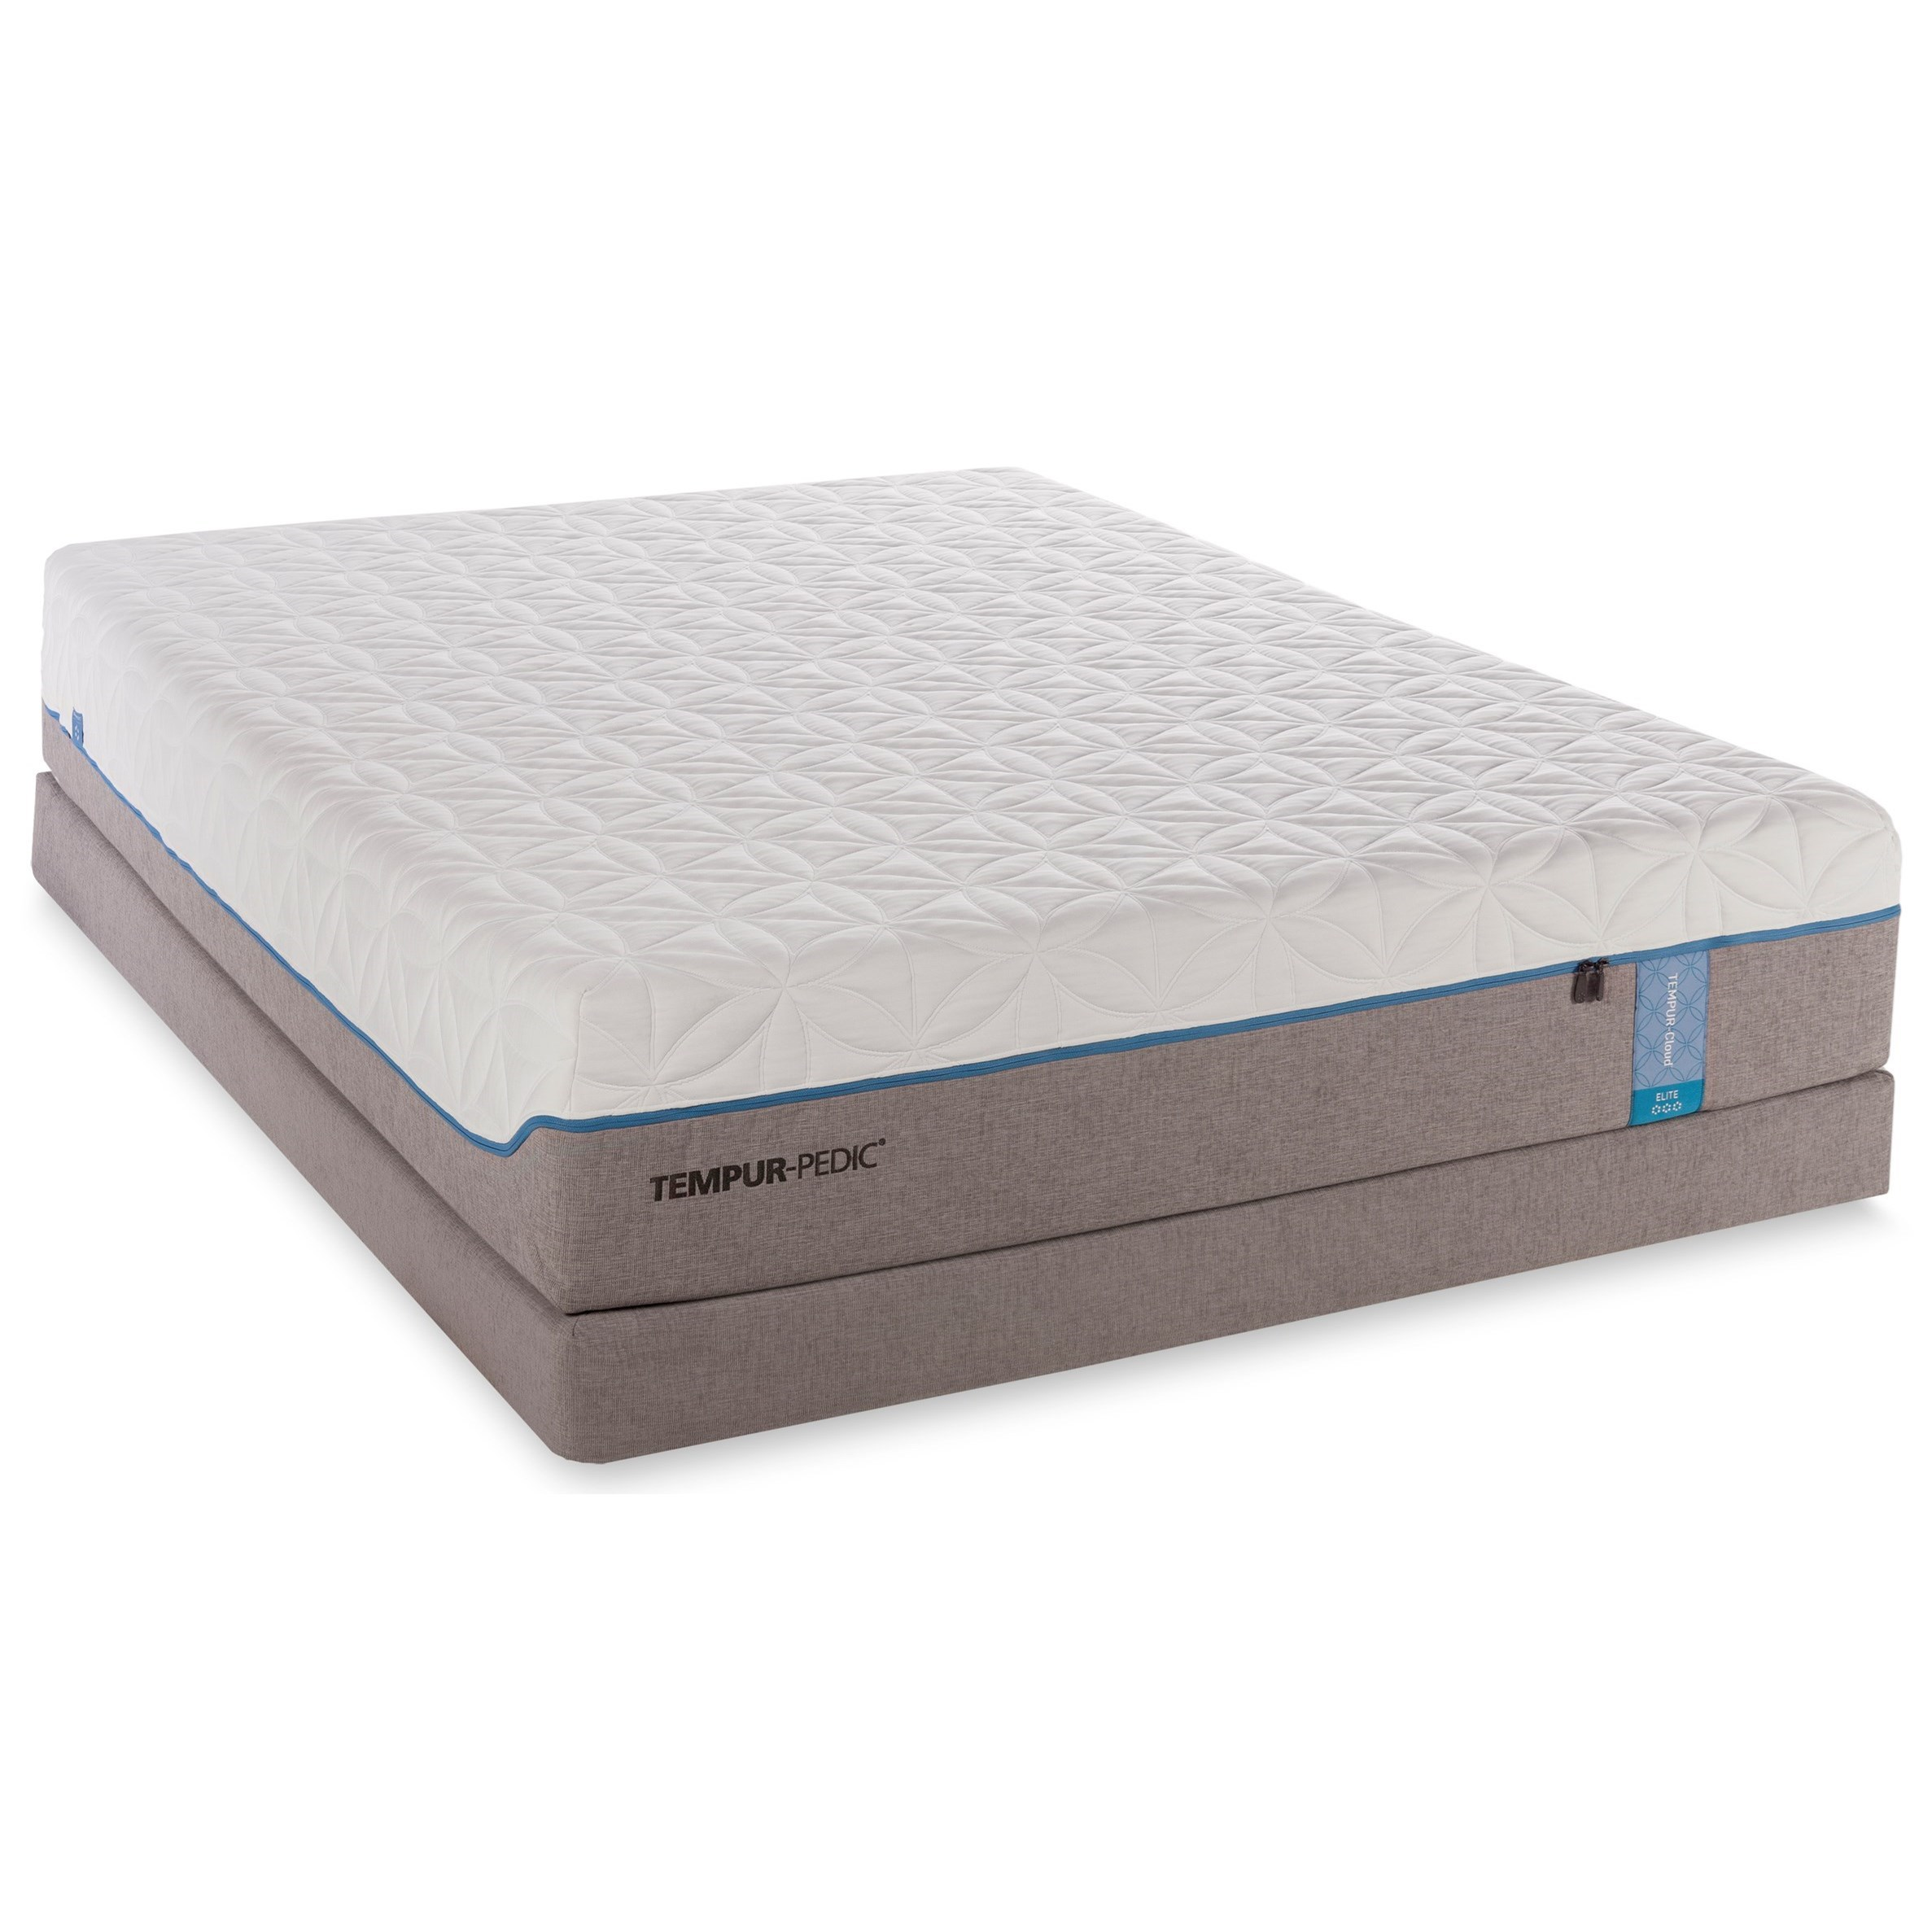 Tempur-Pedic® TEMPUR-Cloud Elite Queen Extra-Soft Mattress Set - Item Number: 10236150+21510150